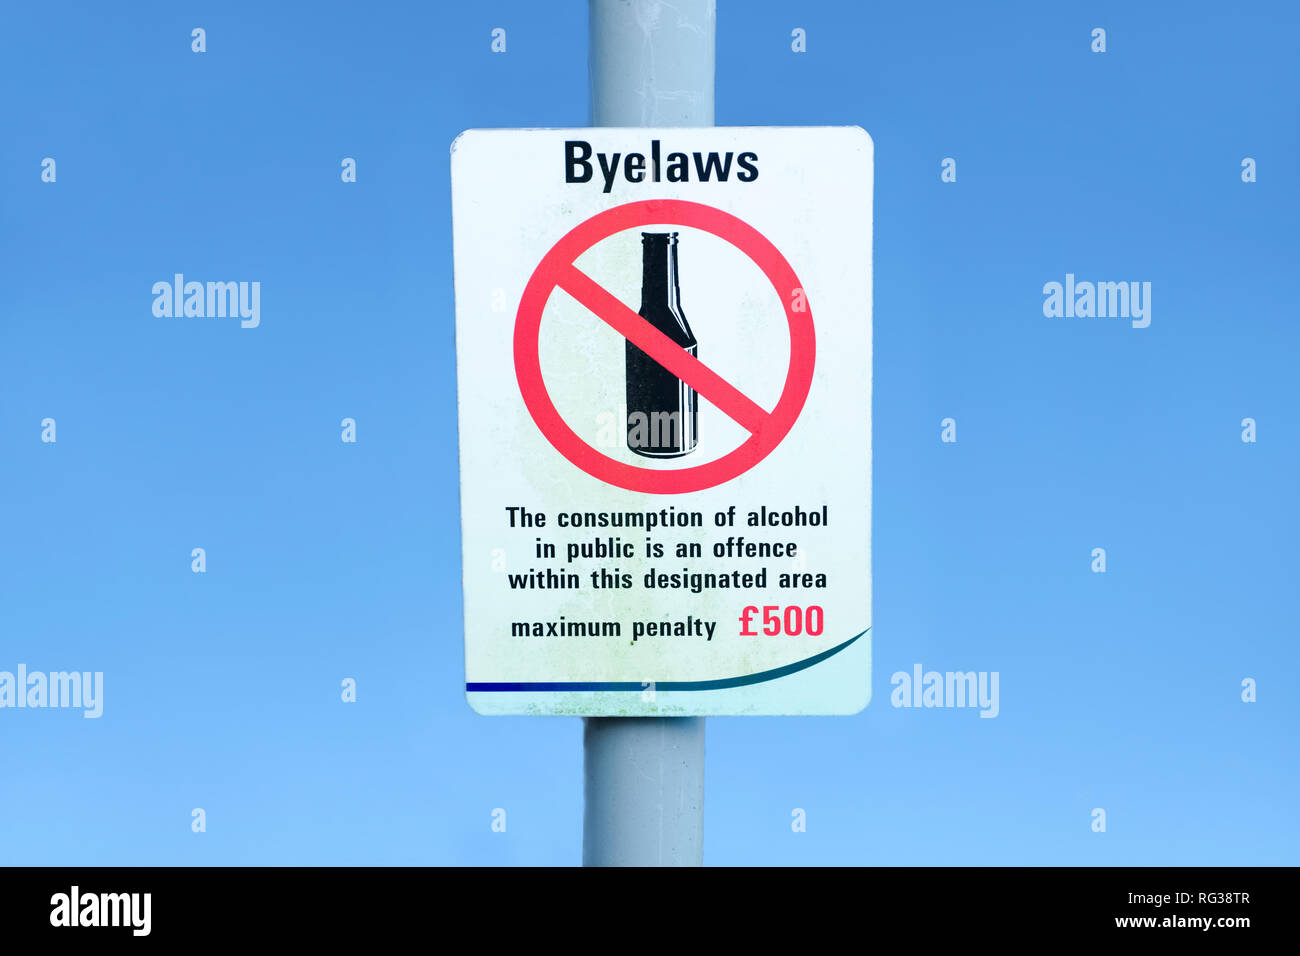 Alcohol consumption public offence fine penalty sign - Stock Image